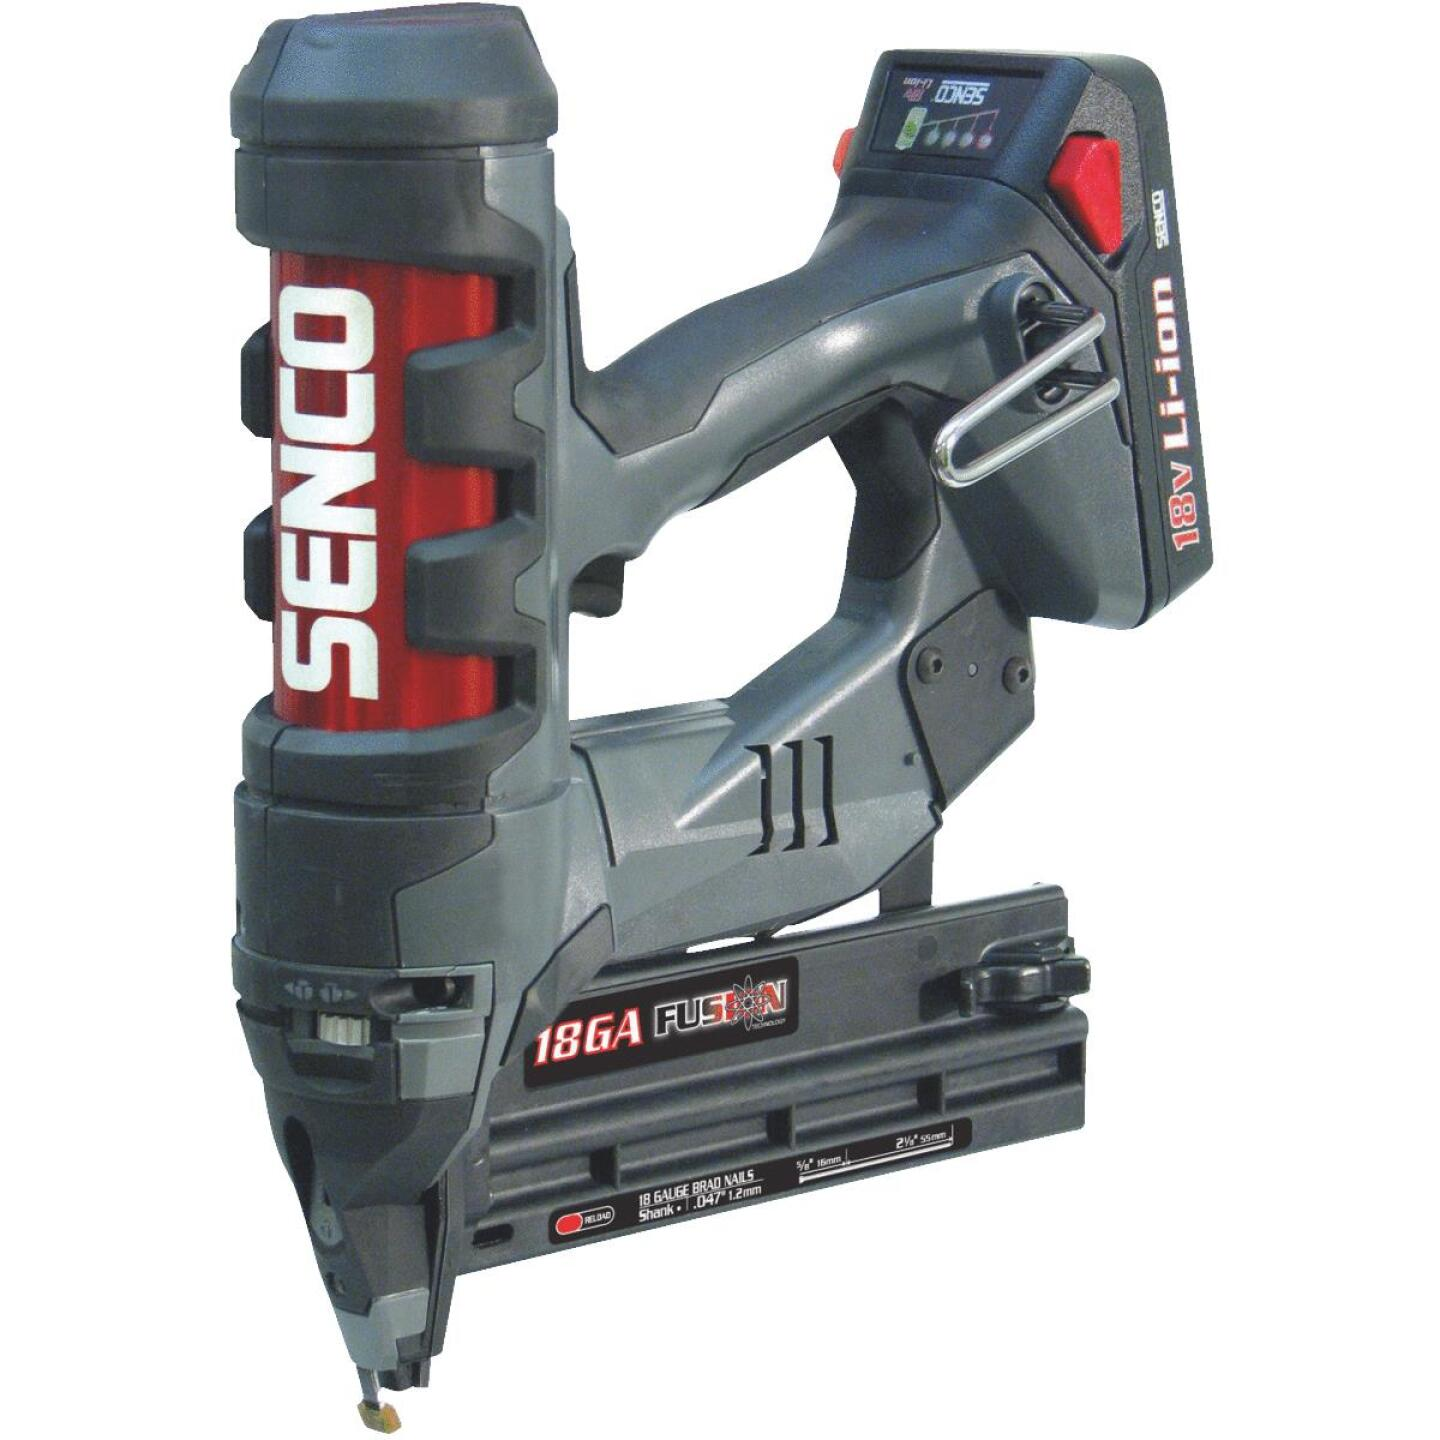 Senco Fusion F-18 18-Volt Lithium-Ion 18-Gauge 2-1/8 In. Cordless Brad Nailer Image 1